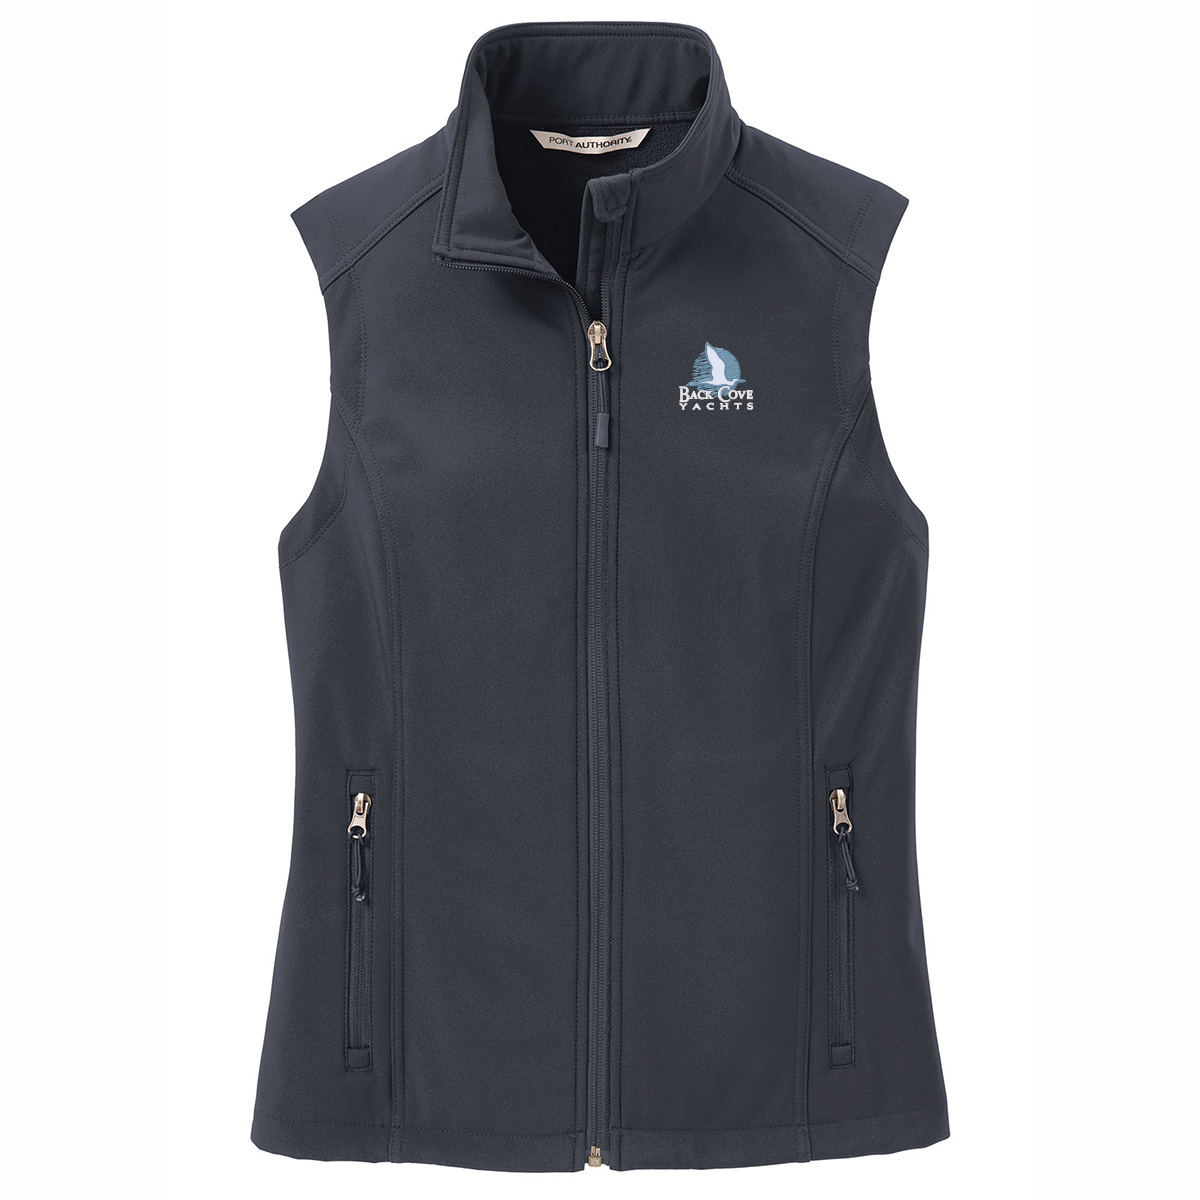 Back Cove Yachts - PA Women's Softshell Vest